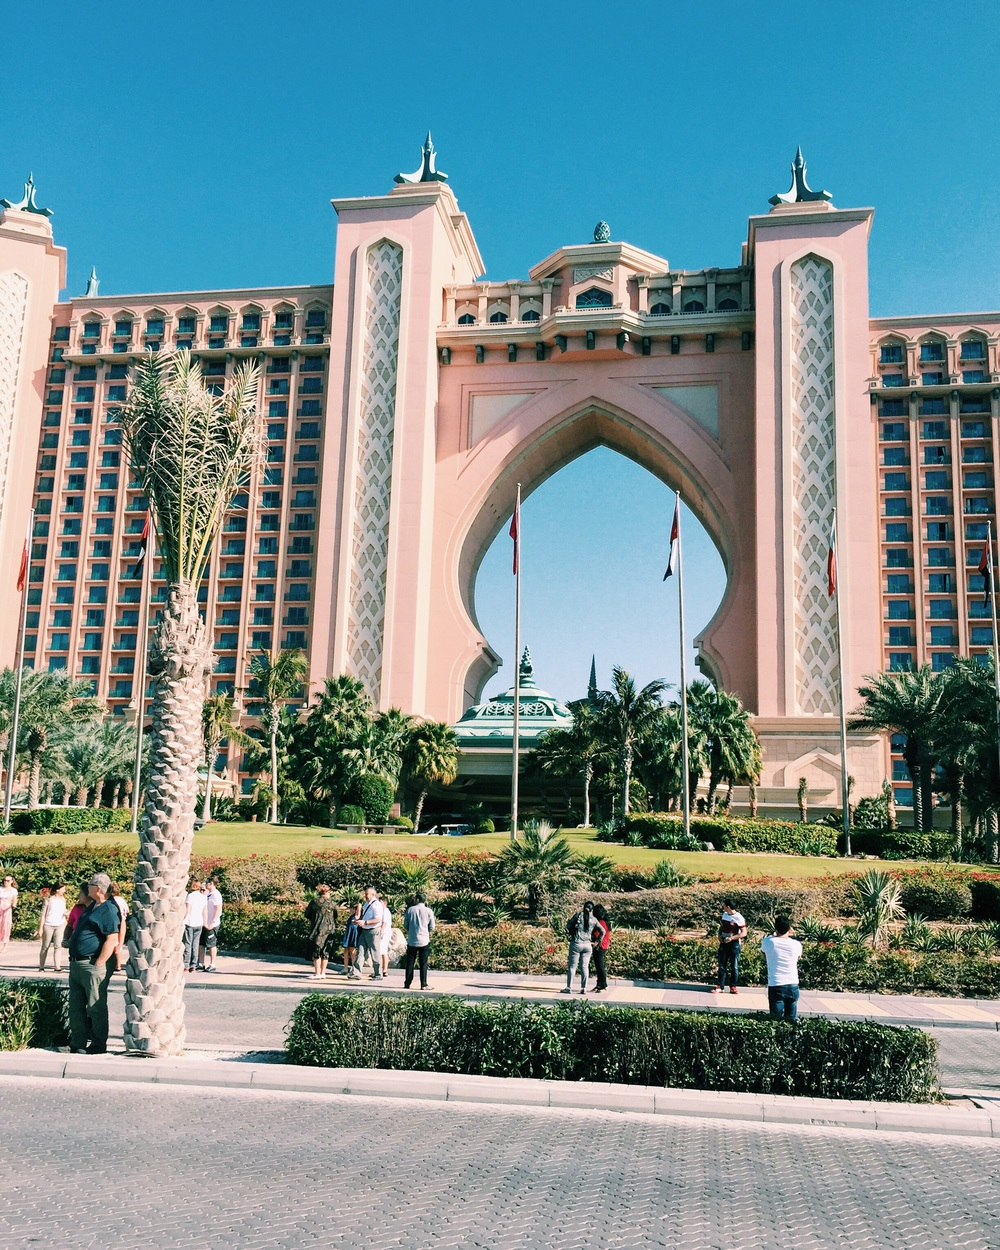 The Atlantis - One of the most beautiful resorts I have seen.